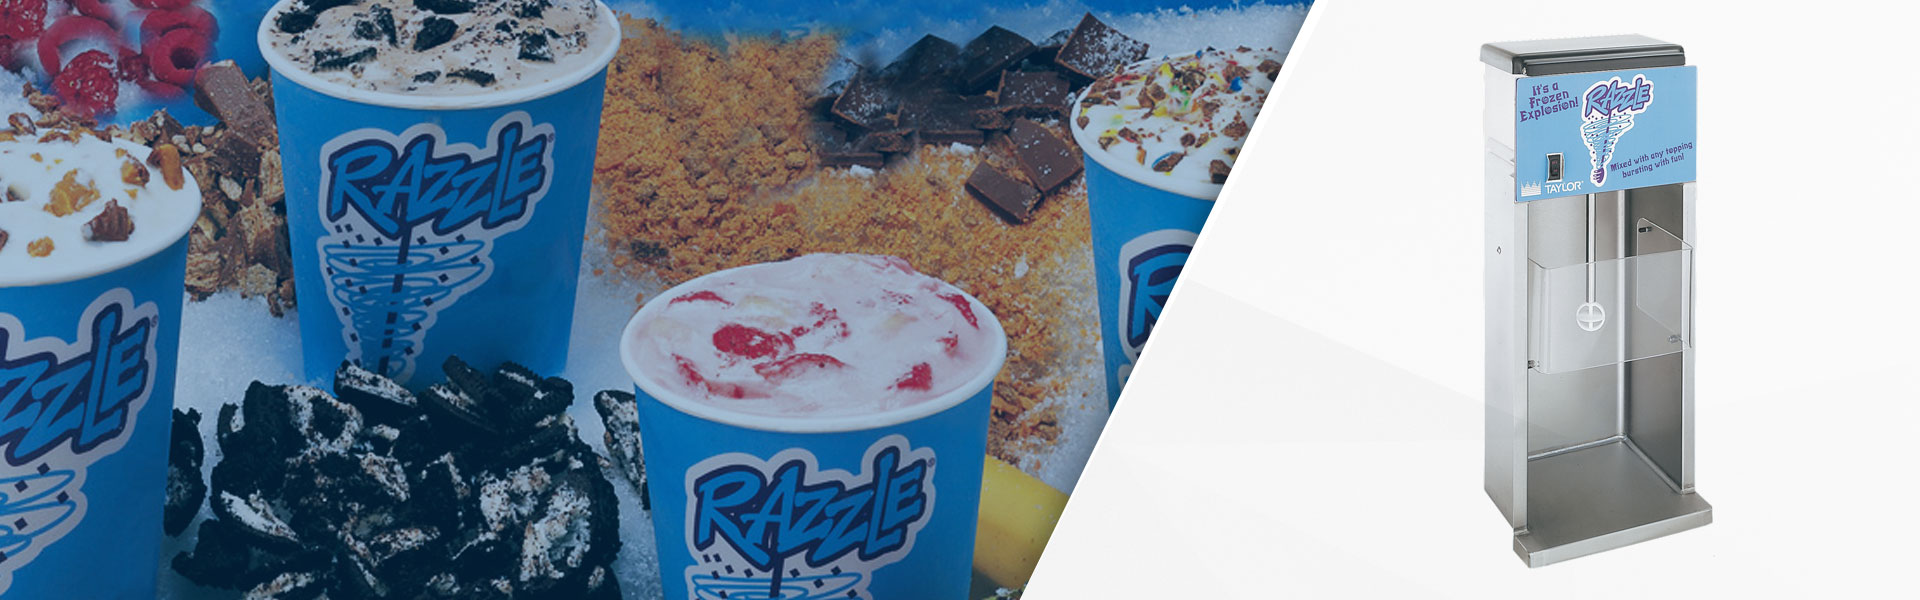 BEAT THE HEAT WITH RAZZLE®: SOFT SERVE, ICE CREAM OR FROZEN YOGURT AND YOUR CUSTOMER'S CHOICE OF MIX-INS